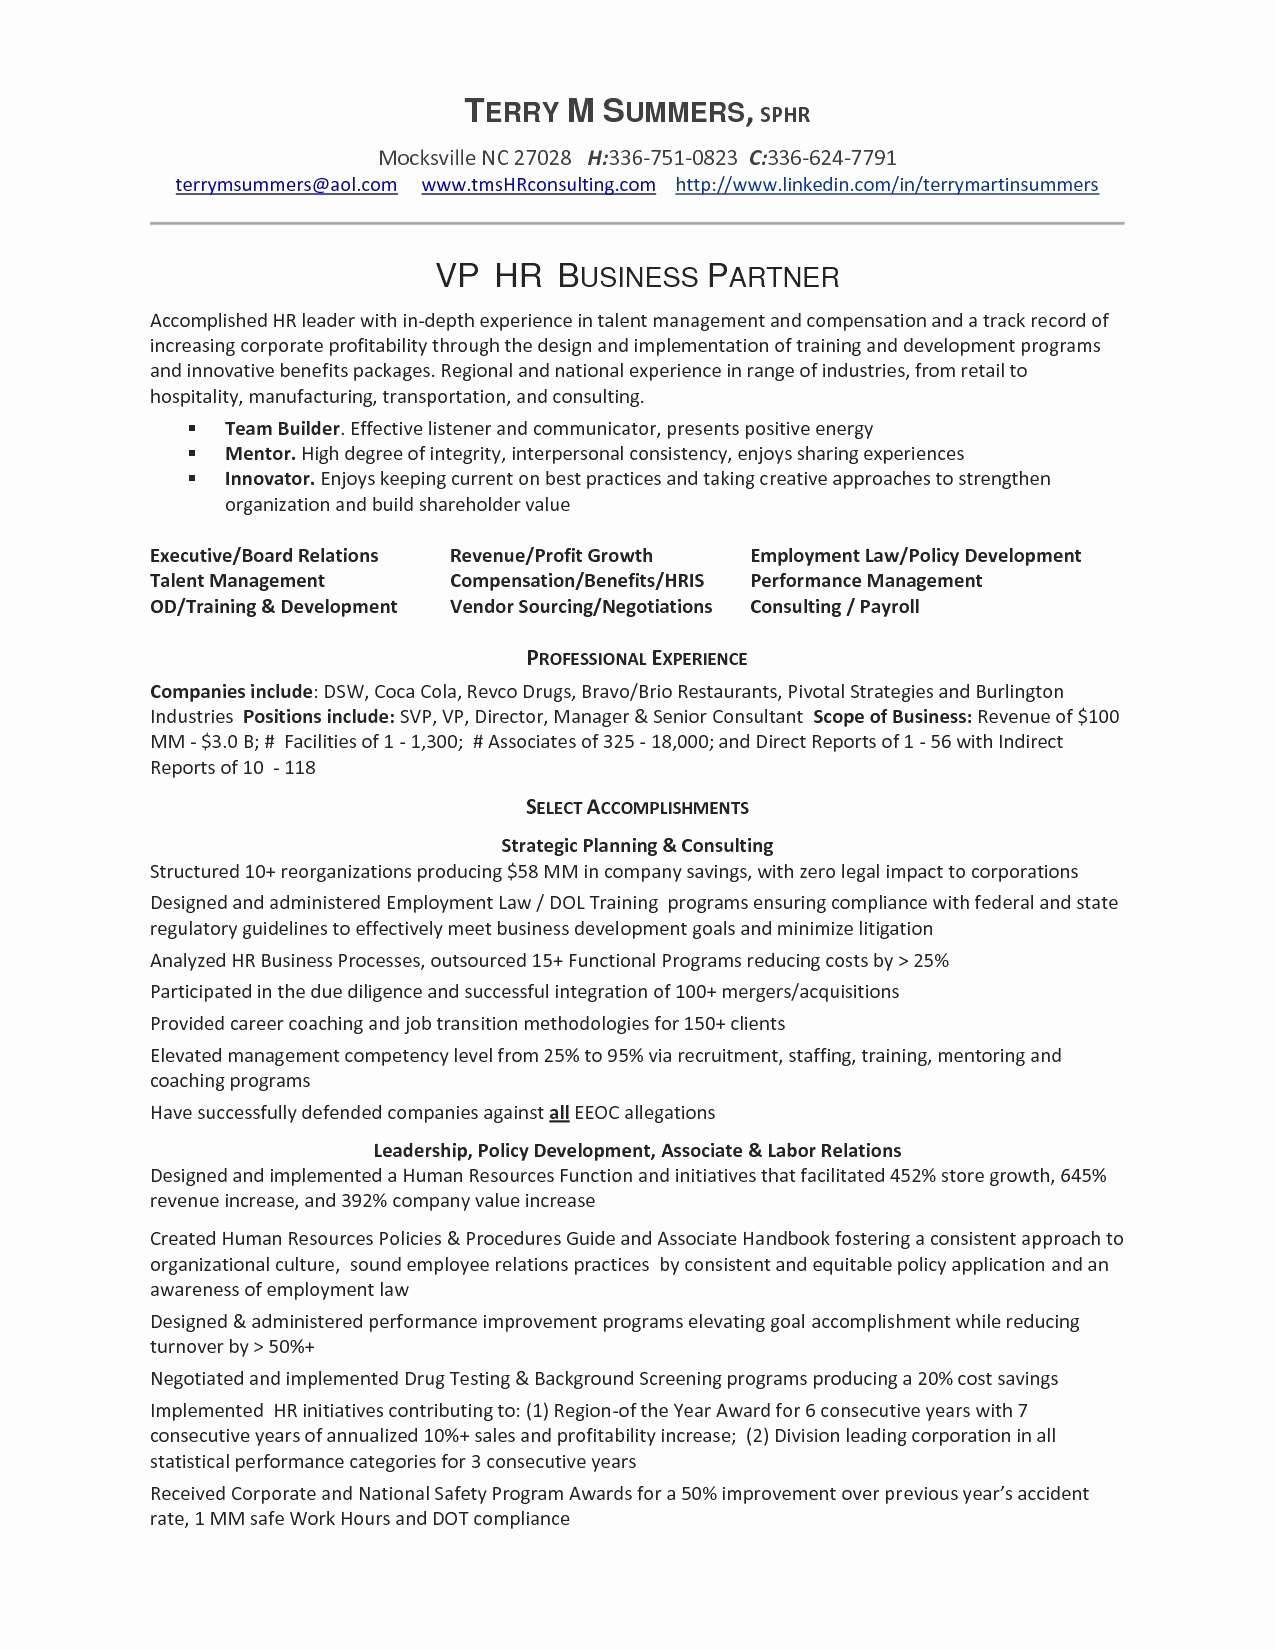 Resume Writer San Diego - Brilliant Local Resume Services Near Me